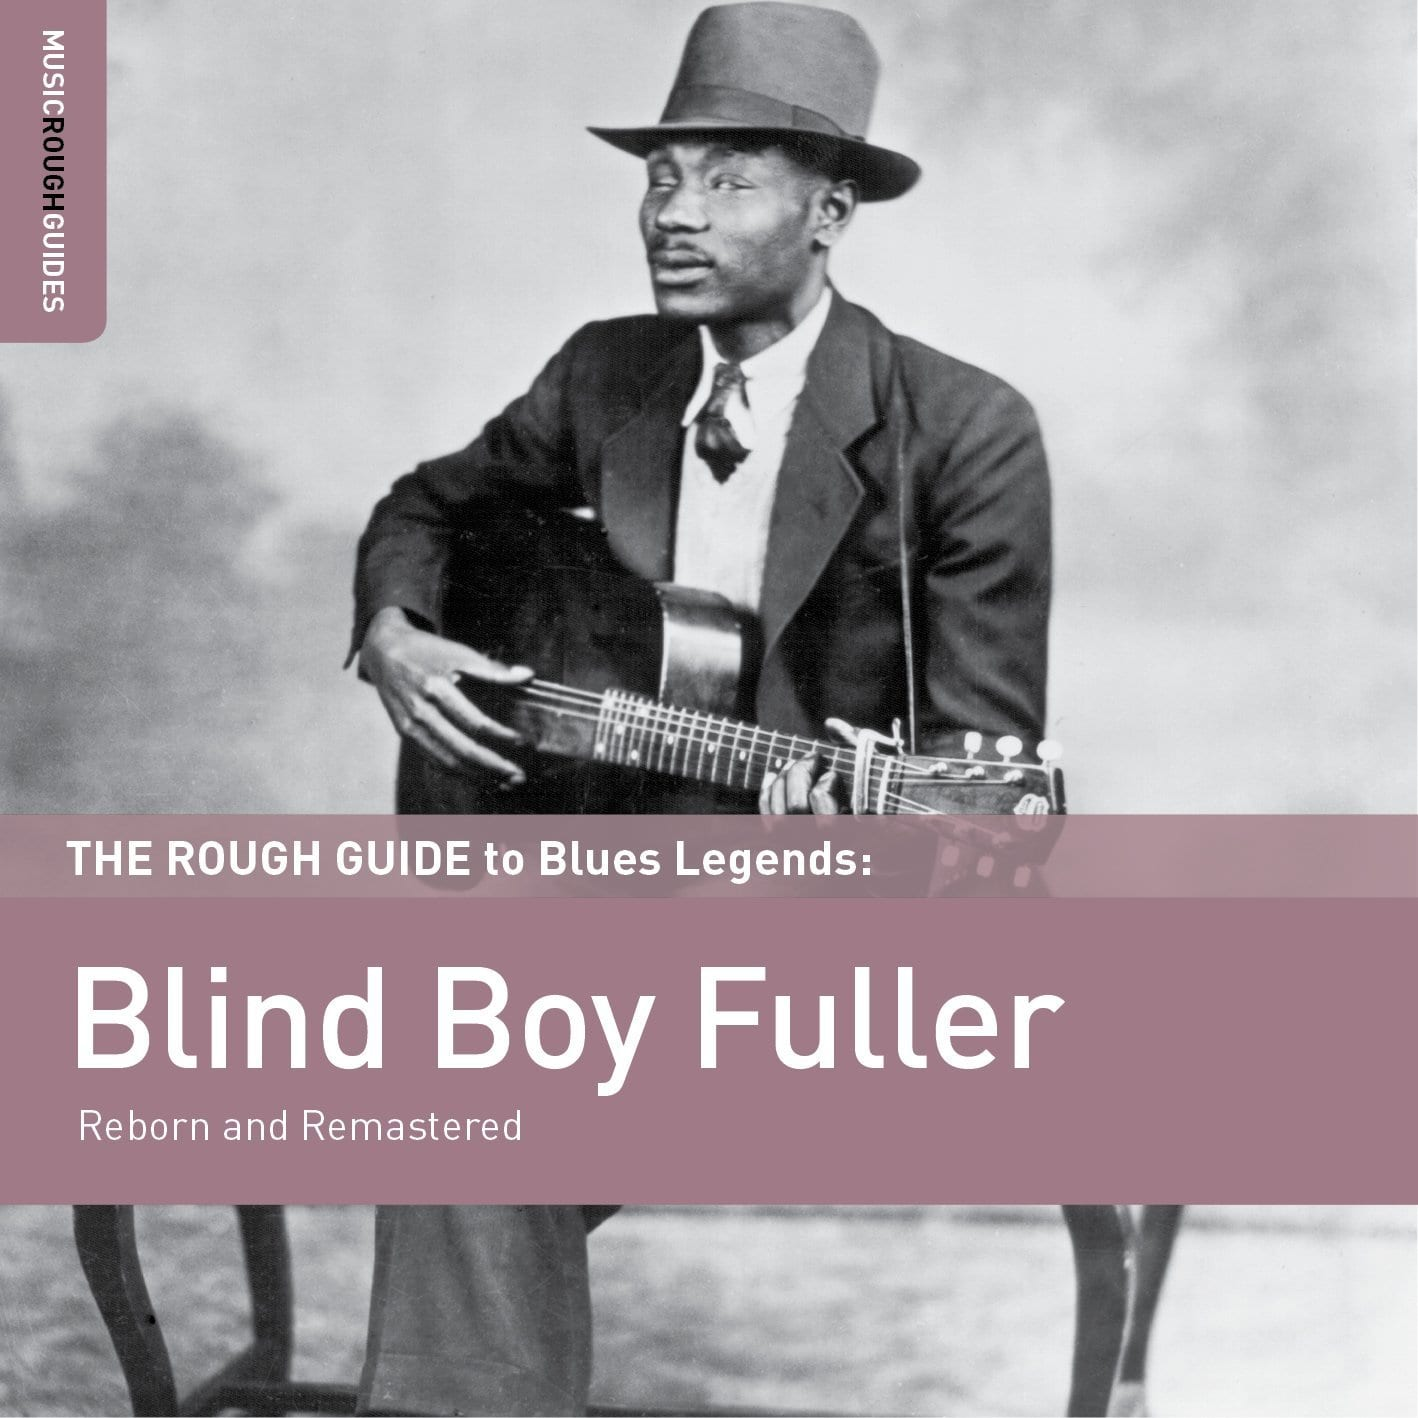 Blind Boy Fuller - Rough Guide To Blind Boy Fuller [LP] (Vinyl) - Urban Vinyl | Records, Headphones, and more.